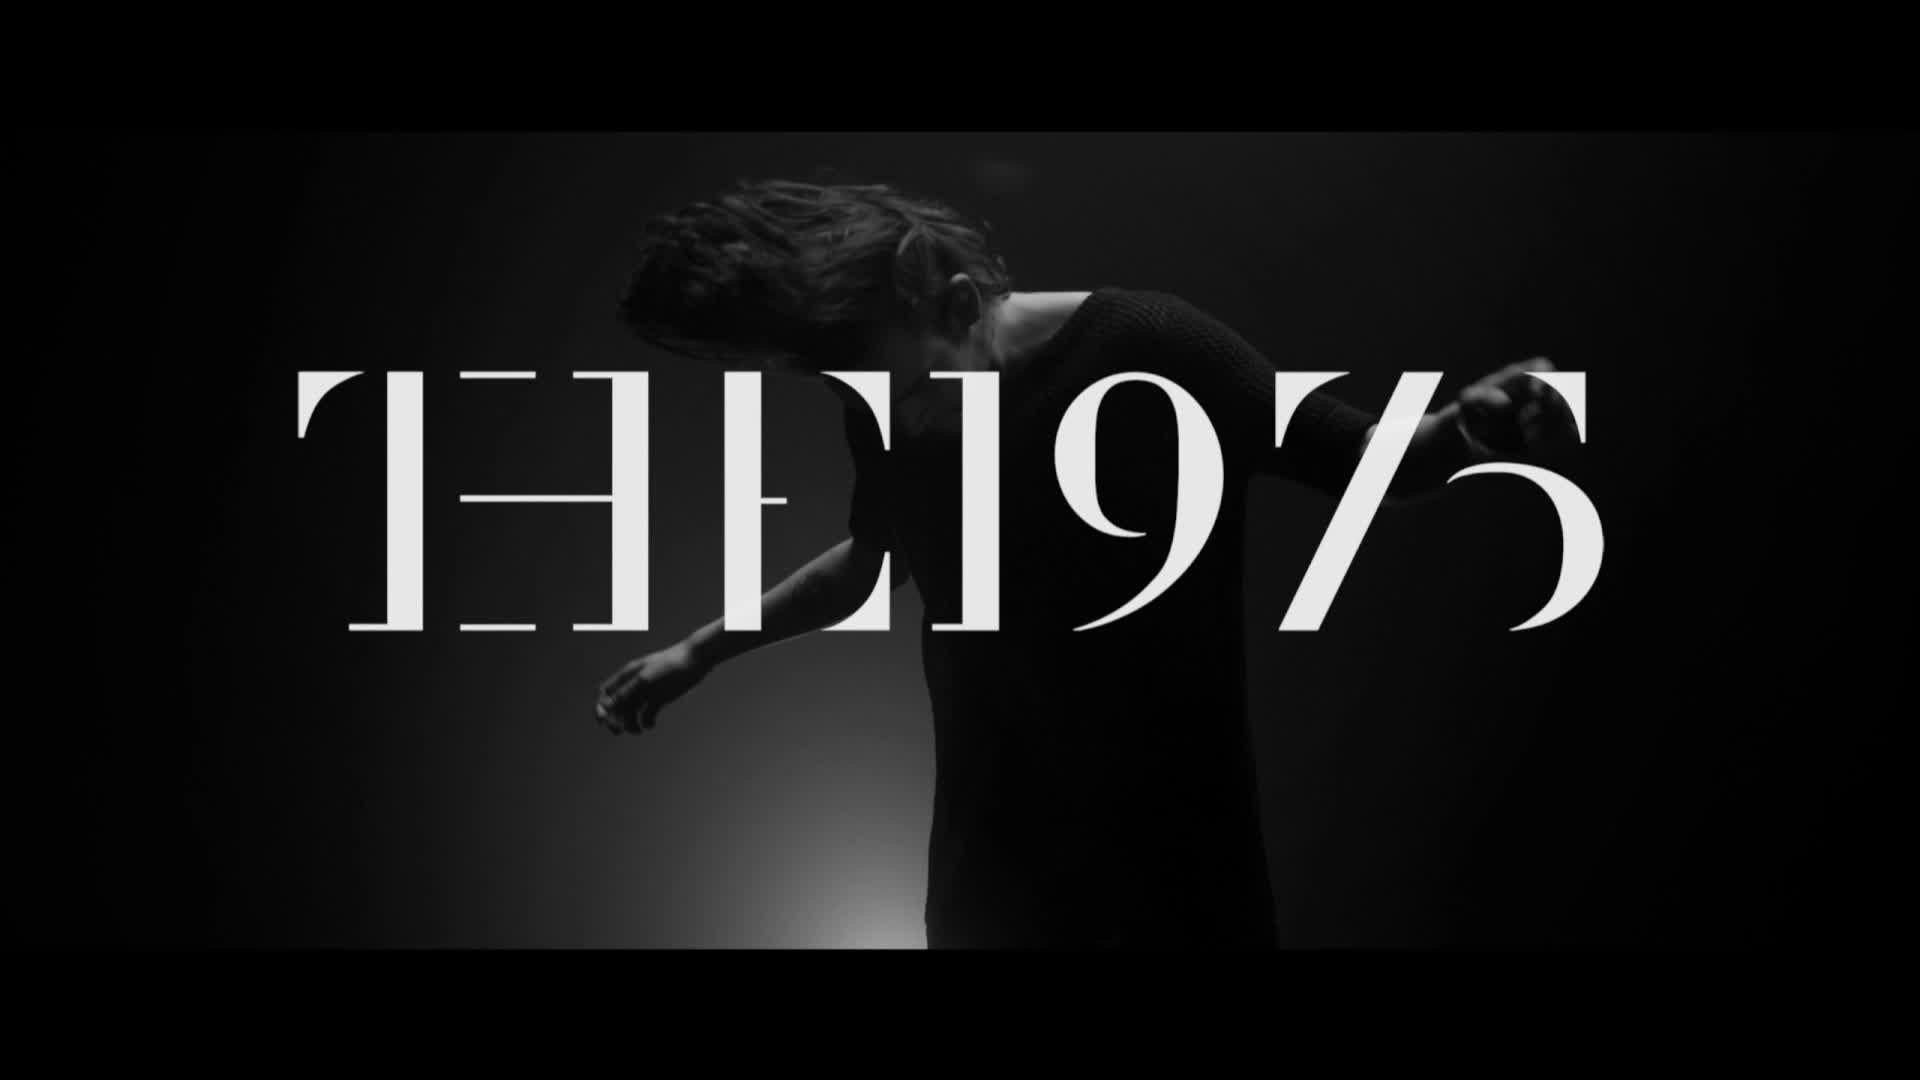 10 Most Popular The 1975 Desktop Wallpaper Full Hd 1920 1080 For Pc Desktop The 1975 Wallpaper The 1975 Desktop Wallpaper